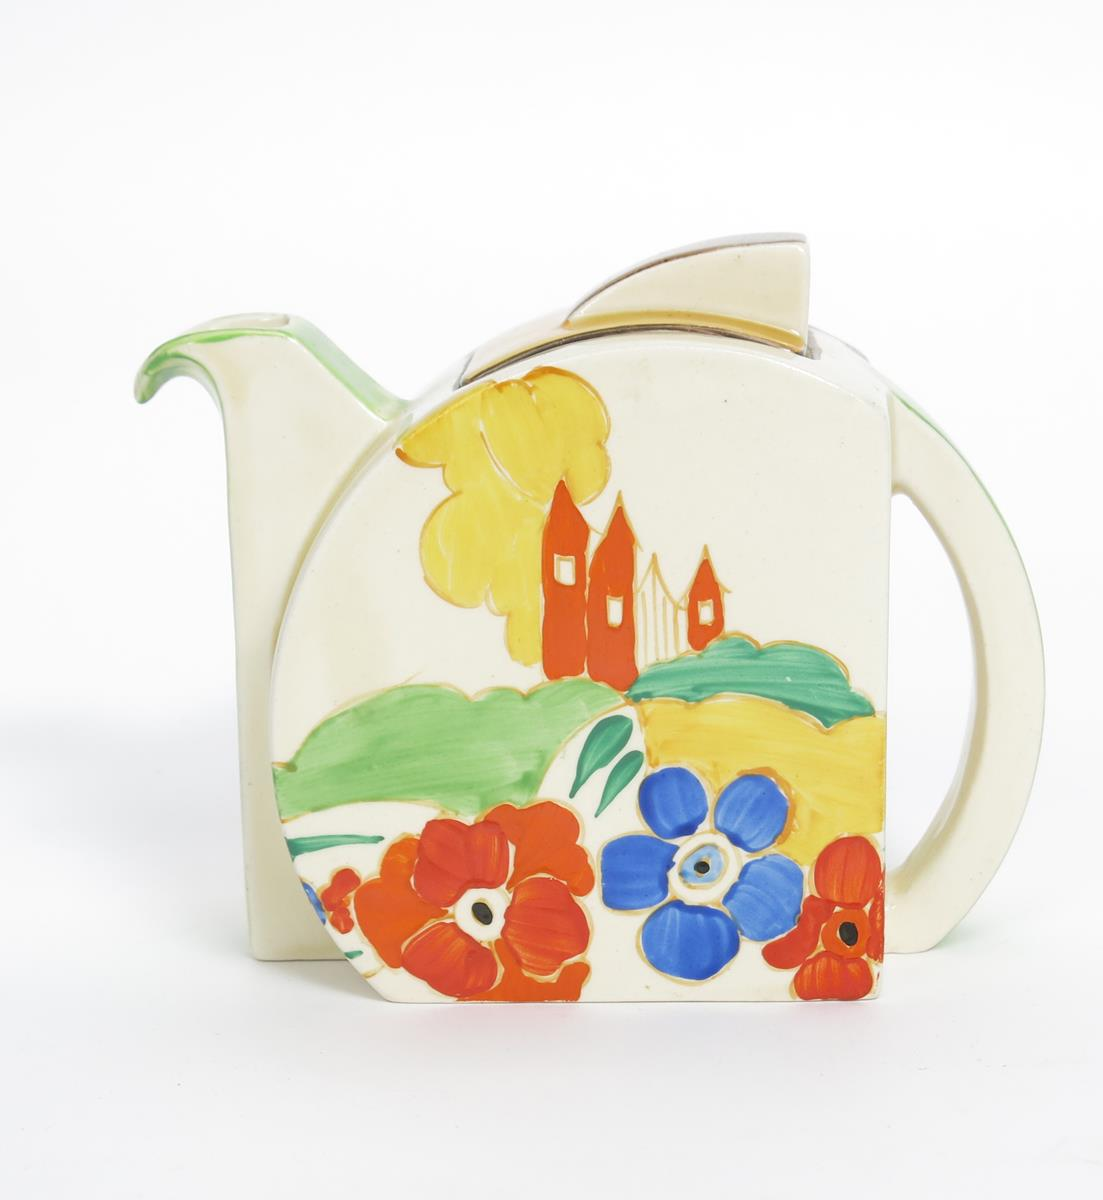 'Alton' a Clarice Cliff Bizarre Stamford teapot and cover, painted in colours, printed factory